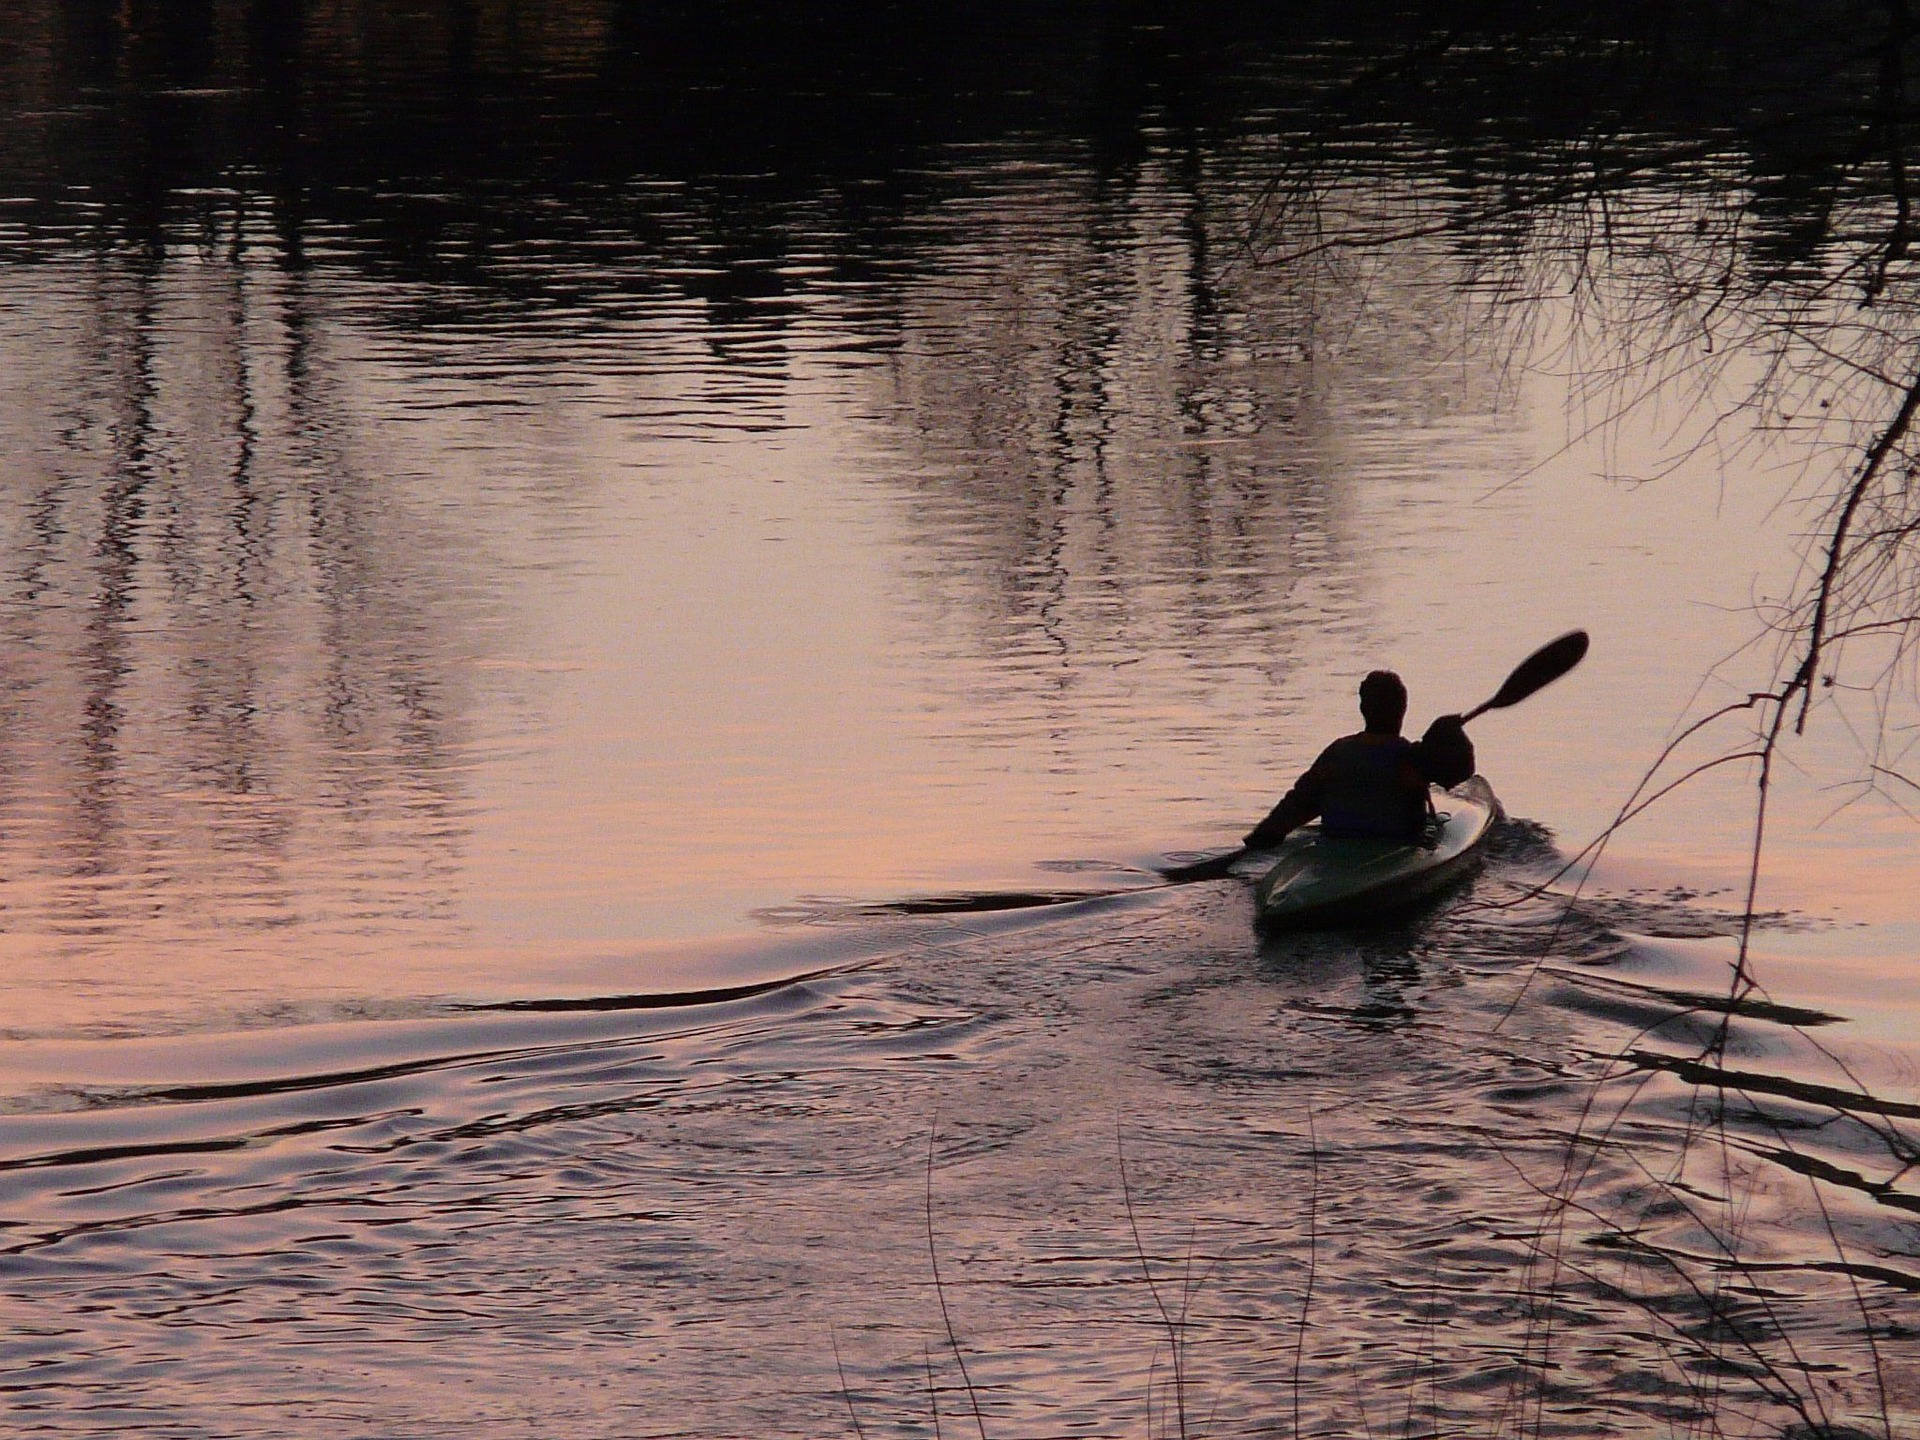 kayakers-3941_1920.jpg